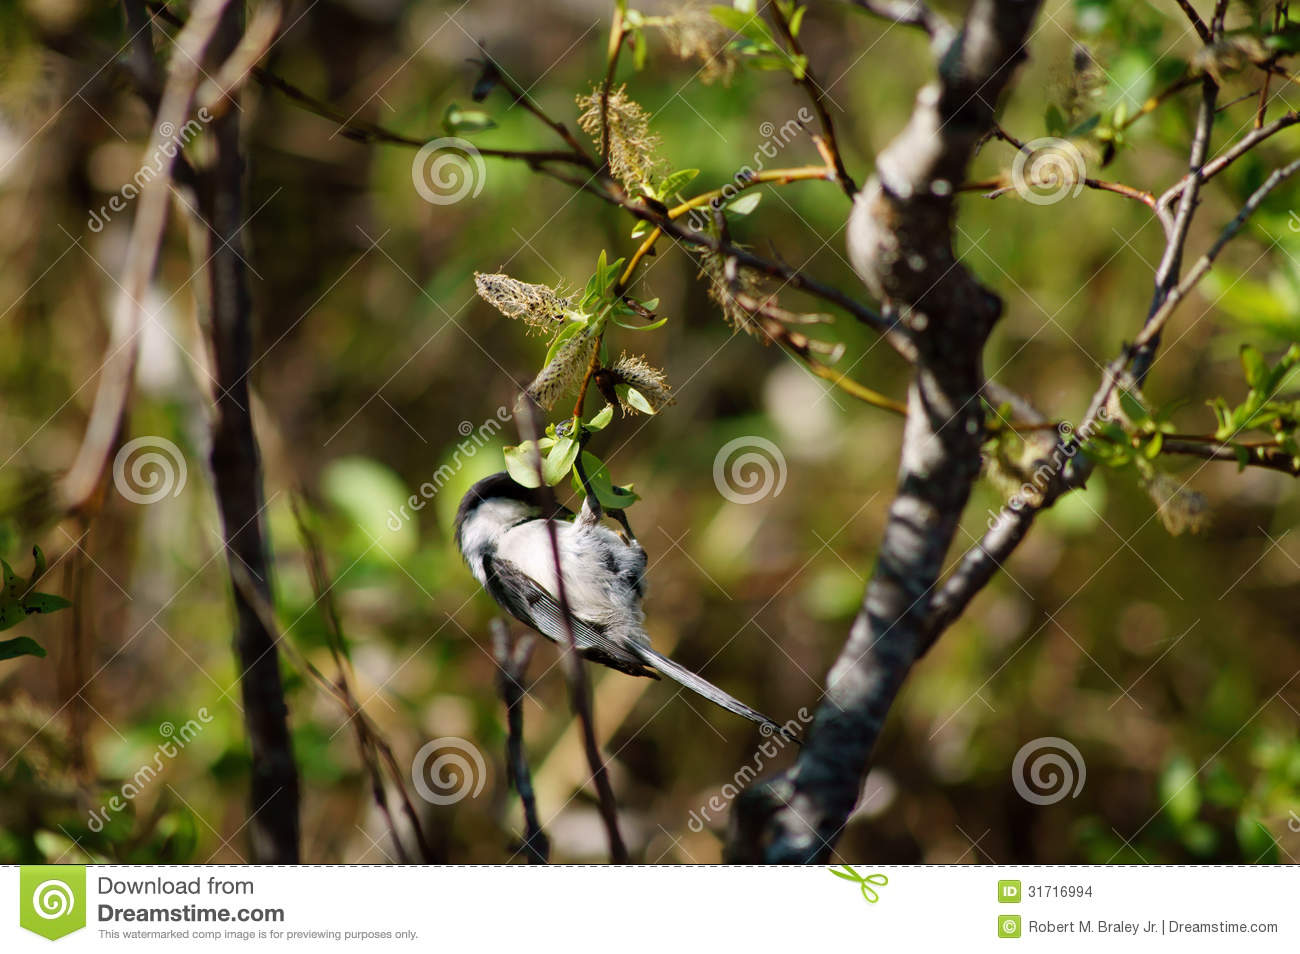 Black-Capped Chickadee Small bird in tree